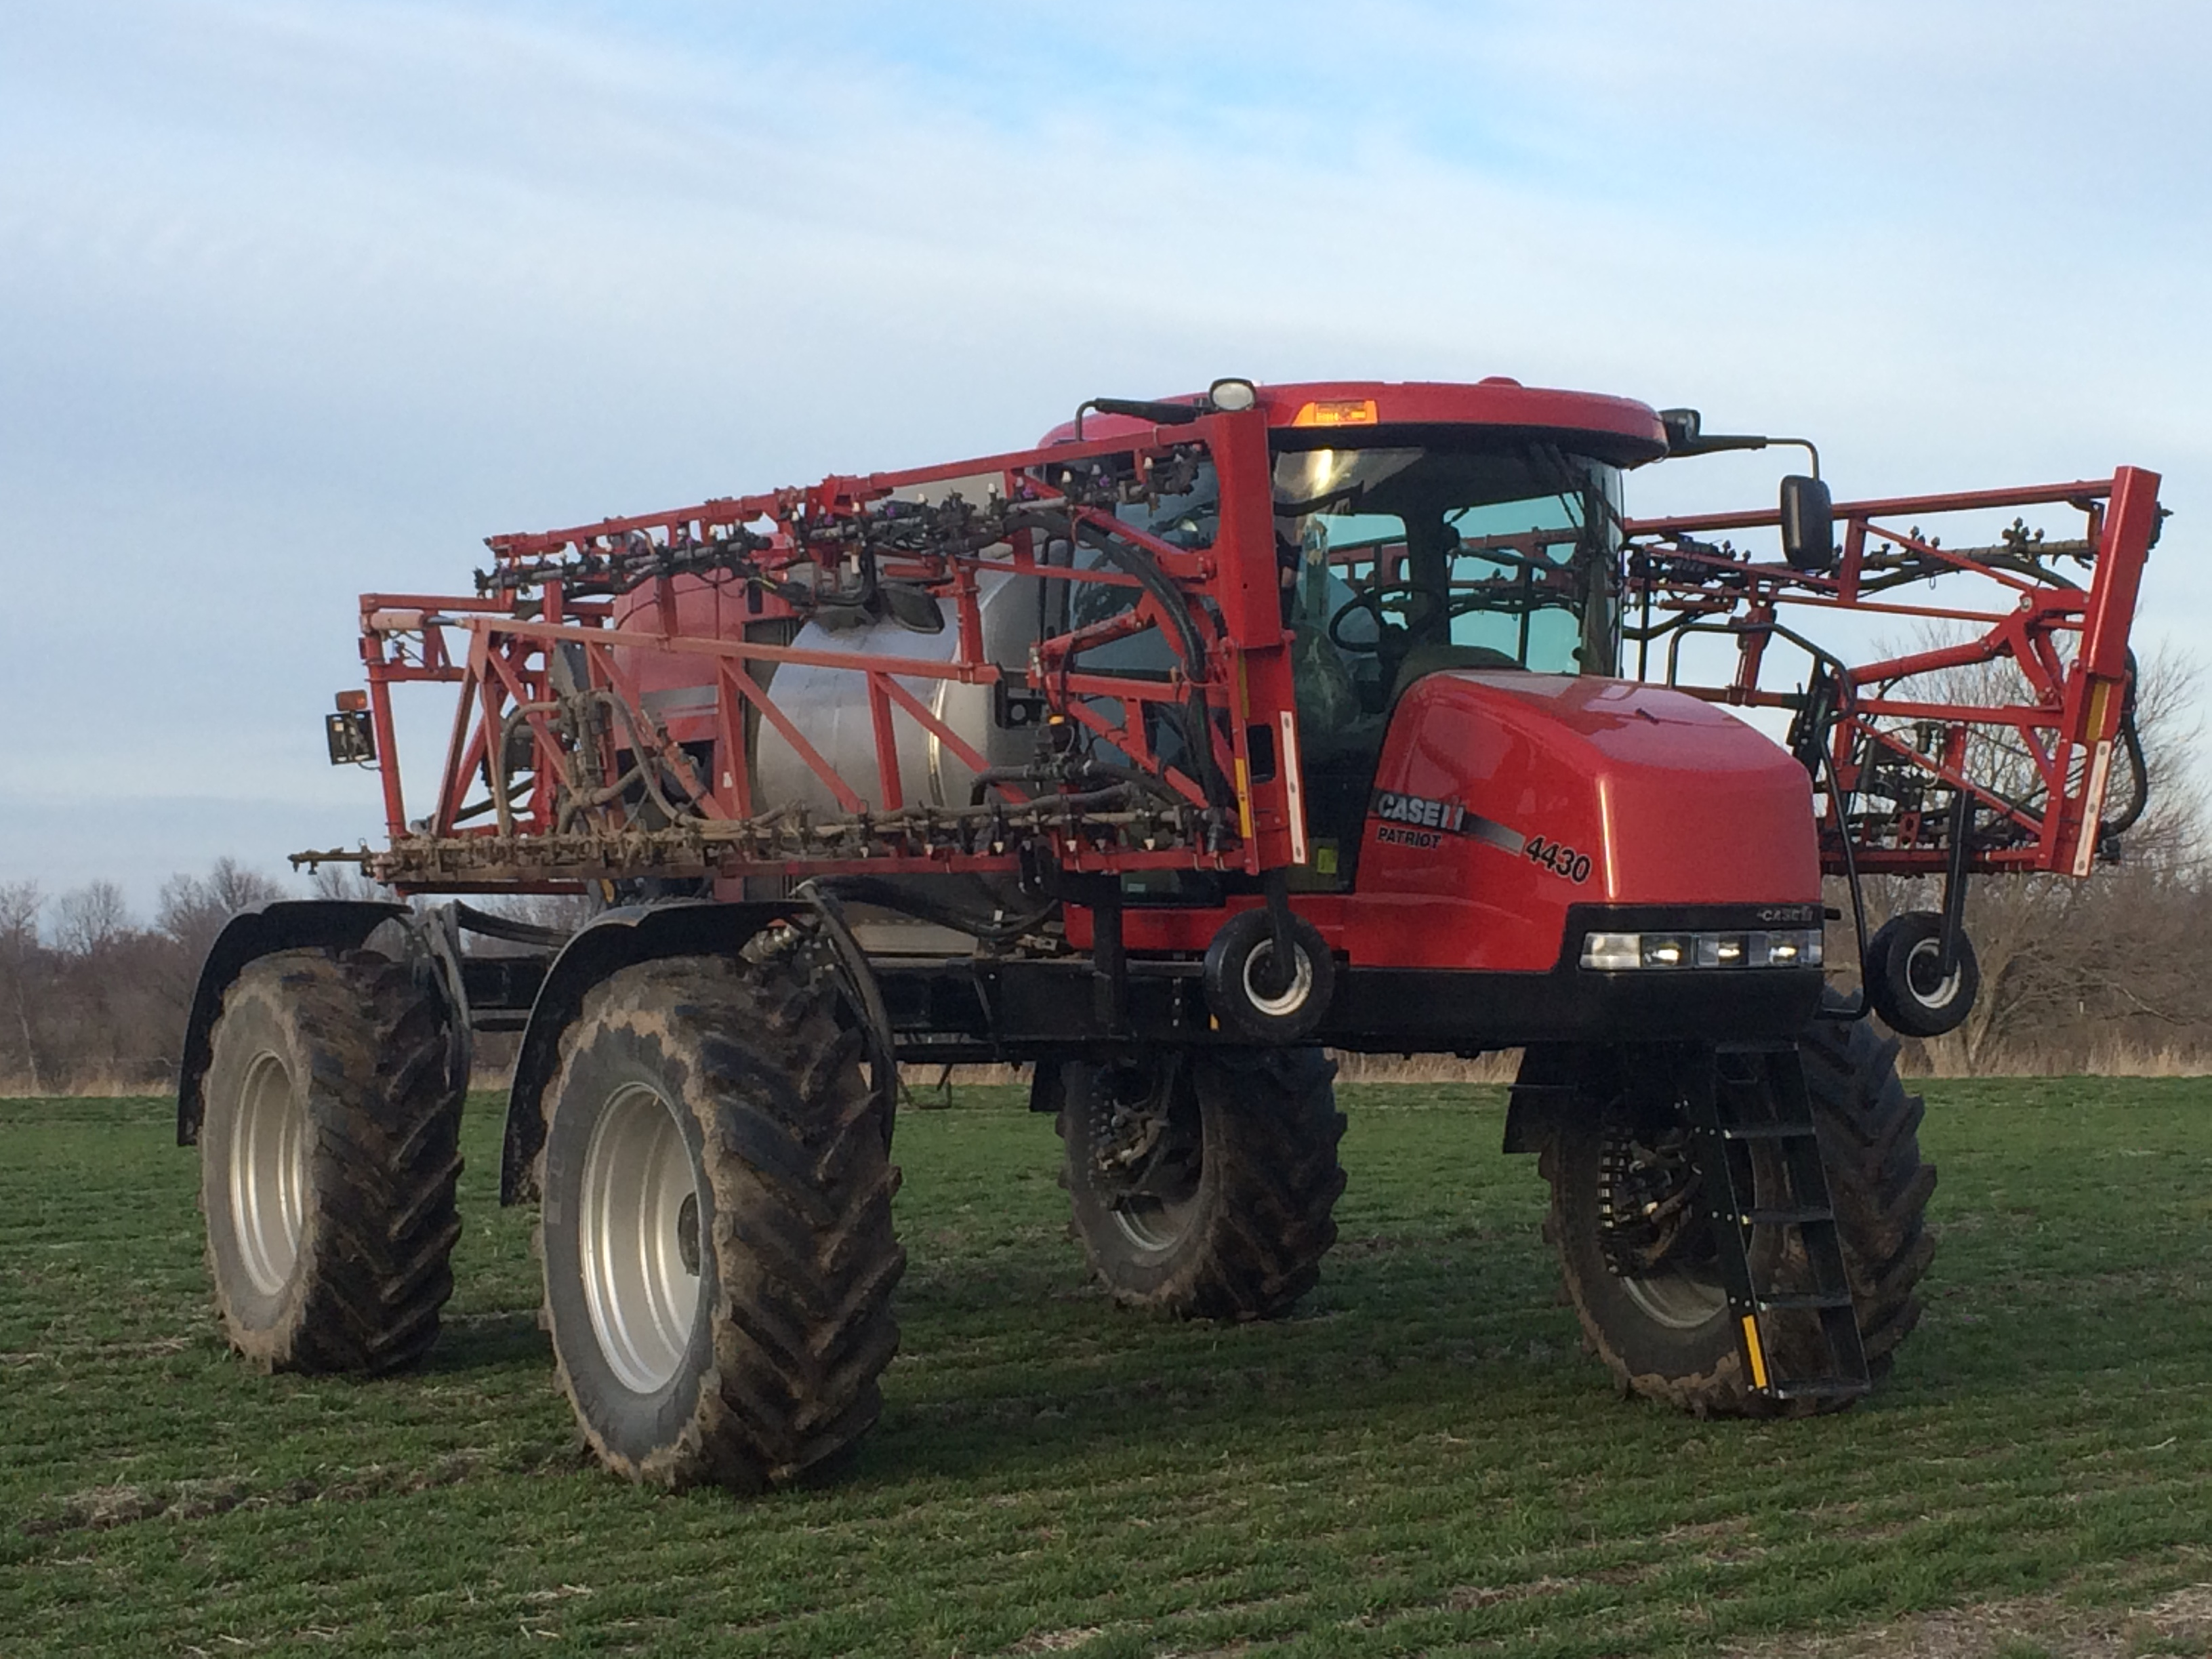 Patriot 4430 field crop sprayer